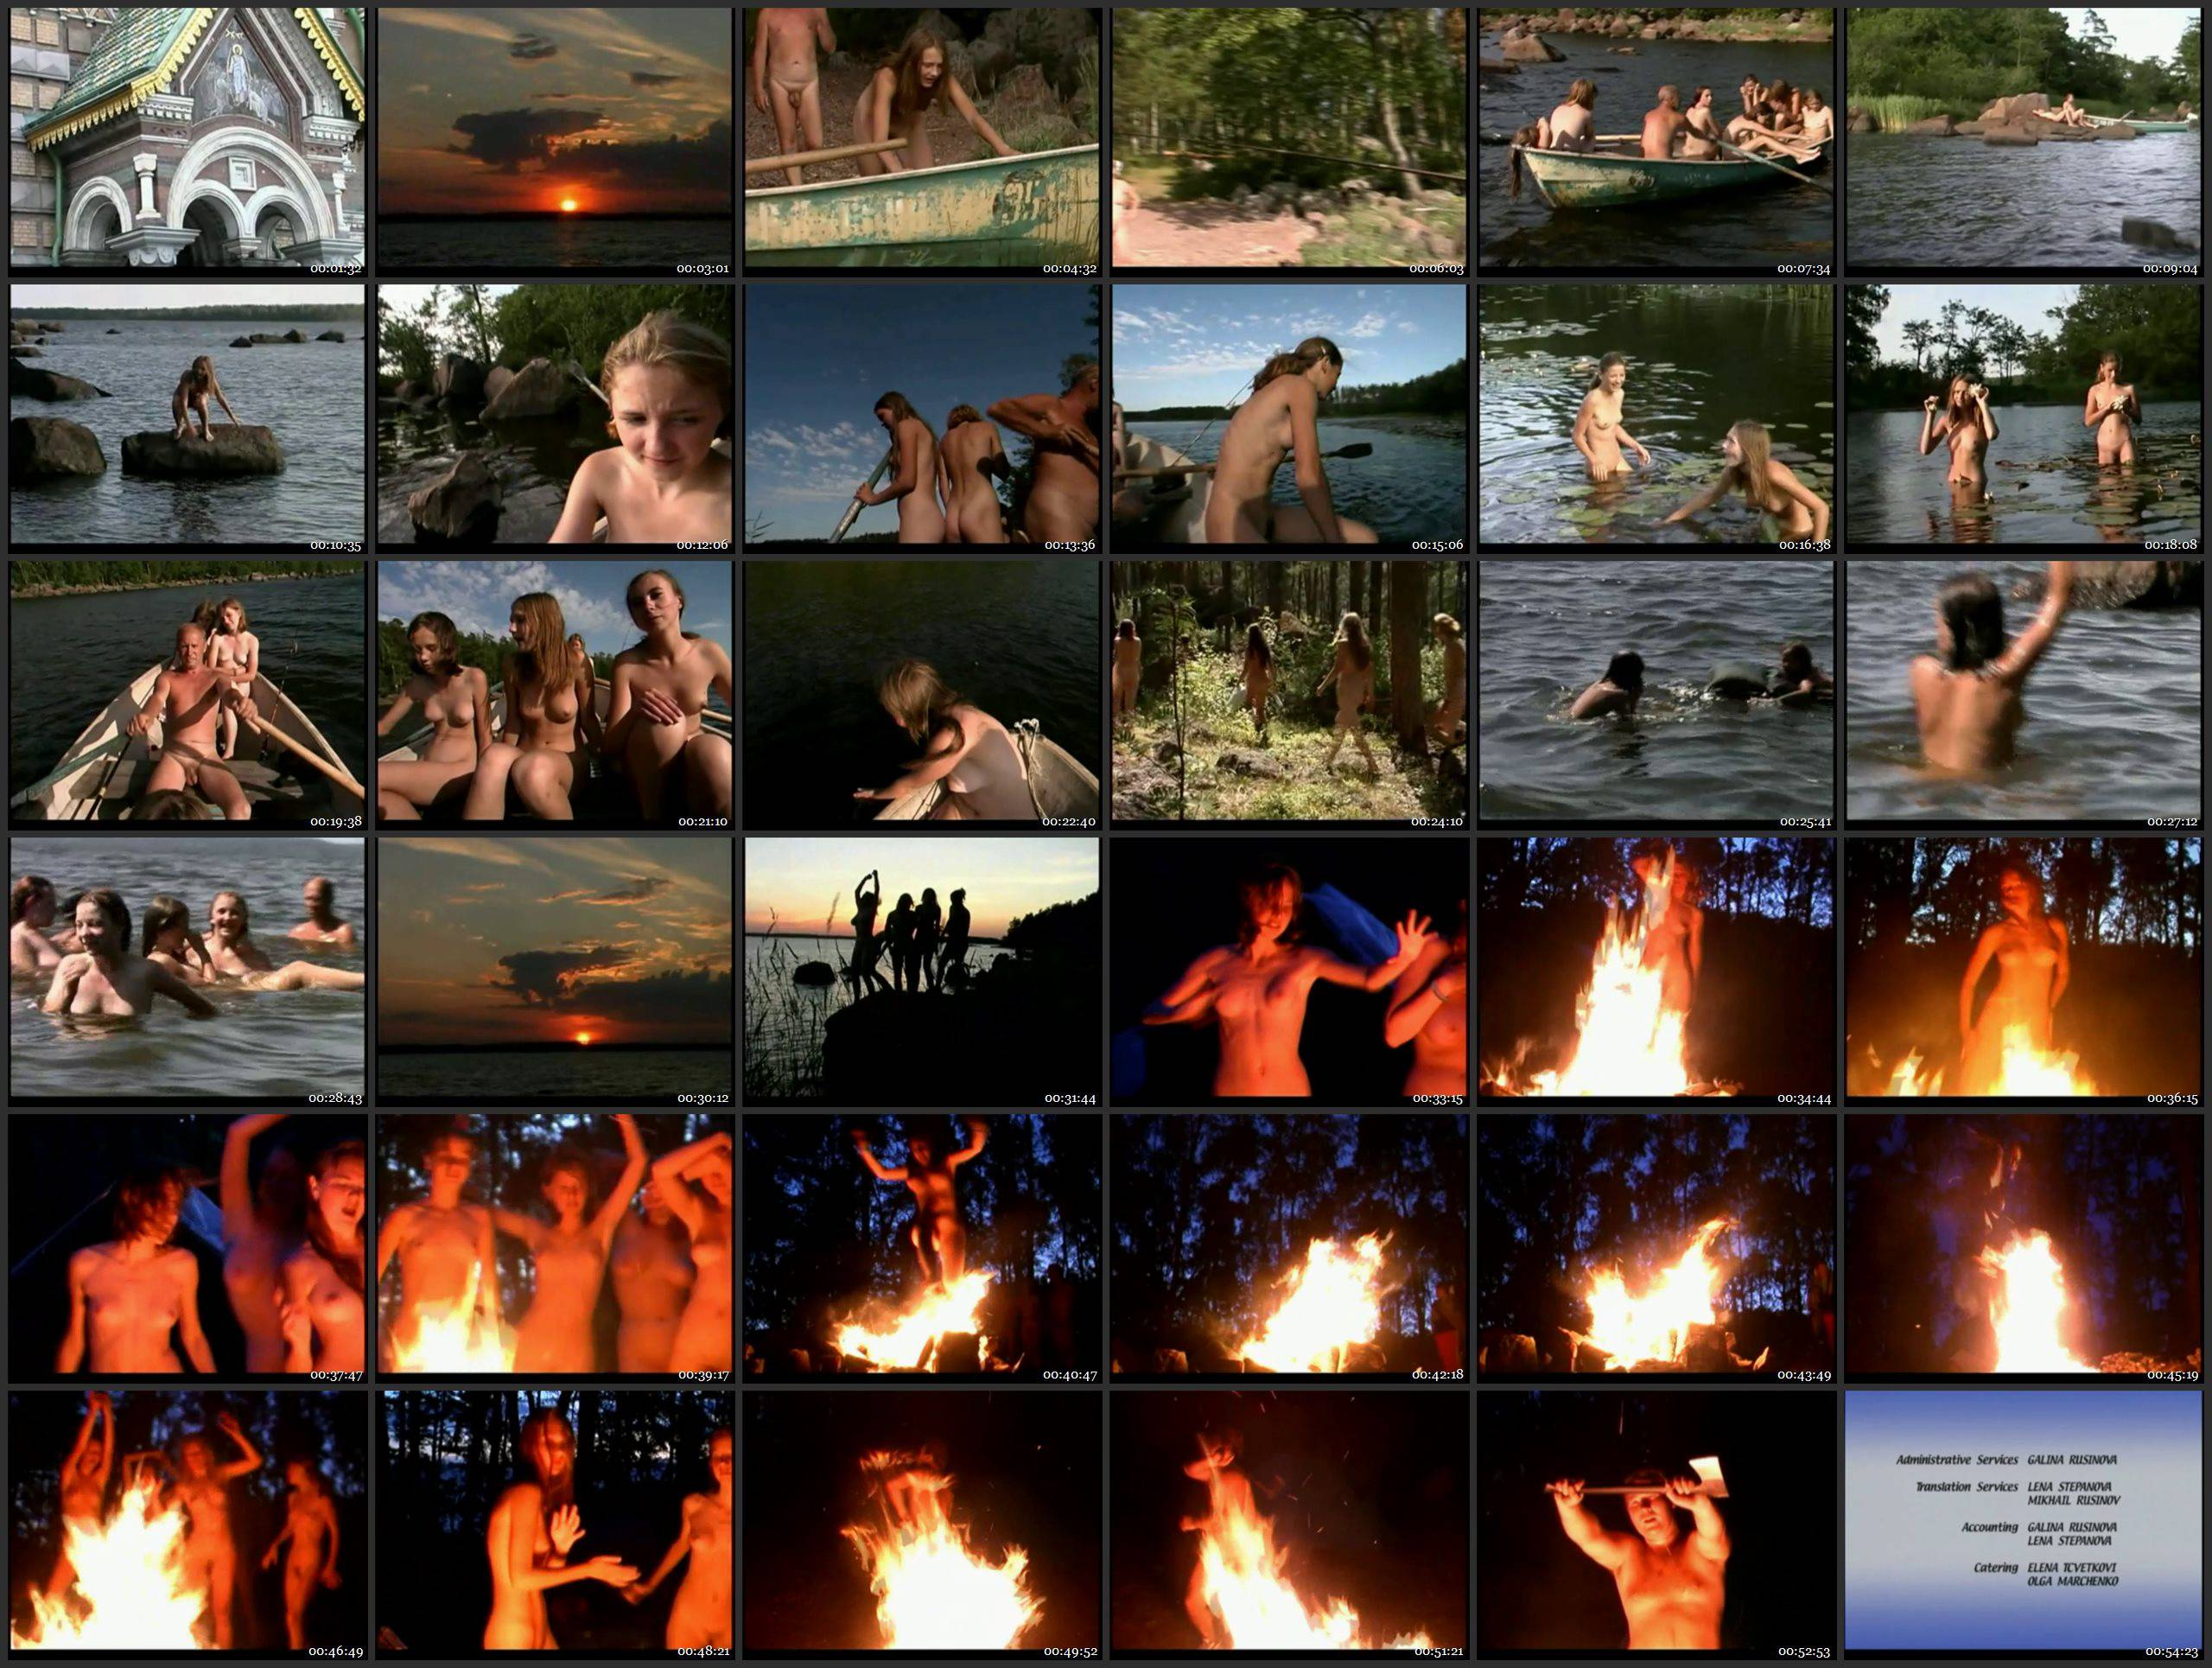 RussianBare Videos Rituals Of Summer - Naturism in Russia 2000 Series - Thumbnails